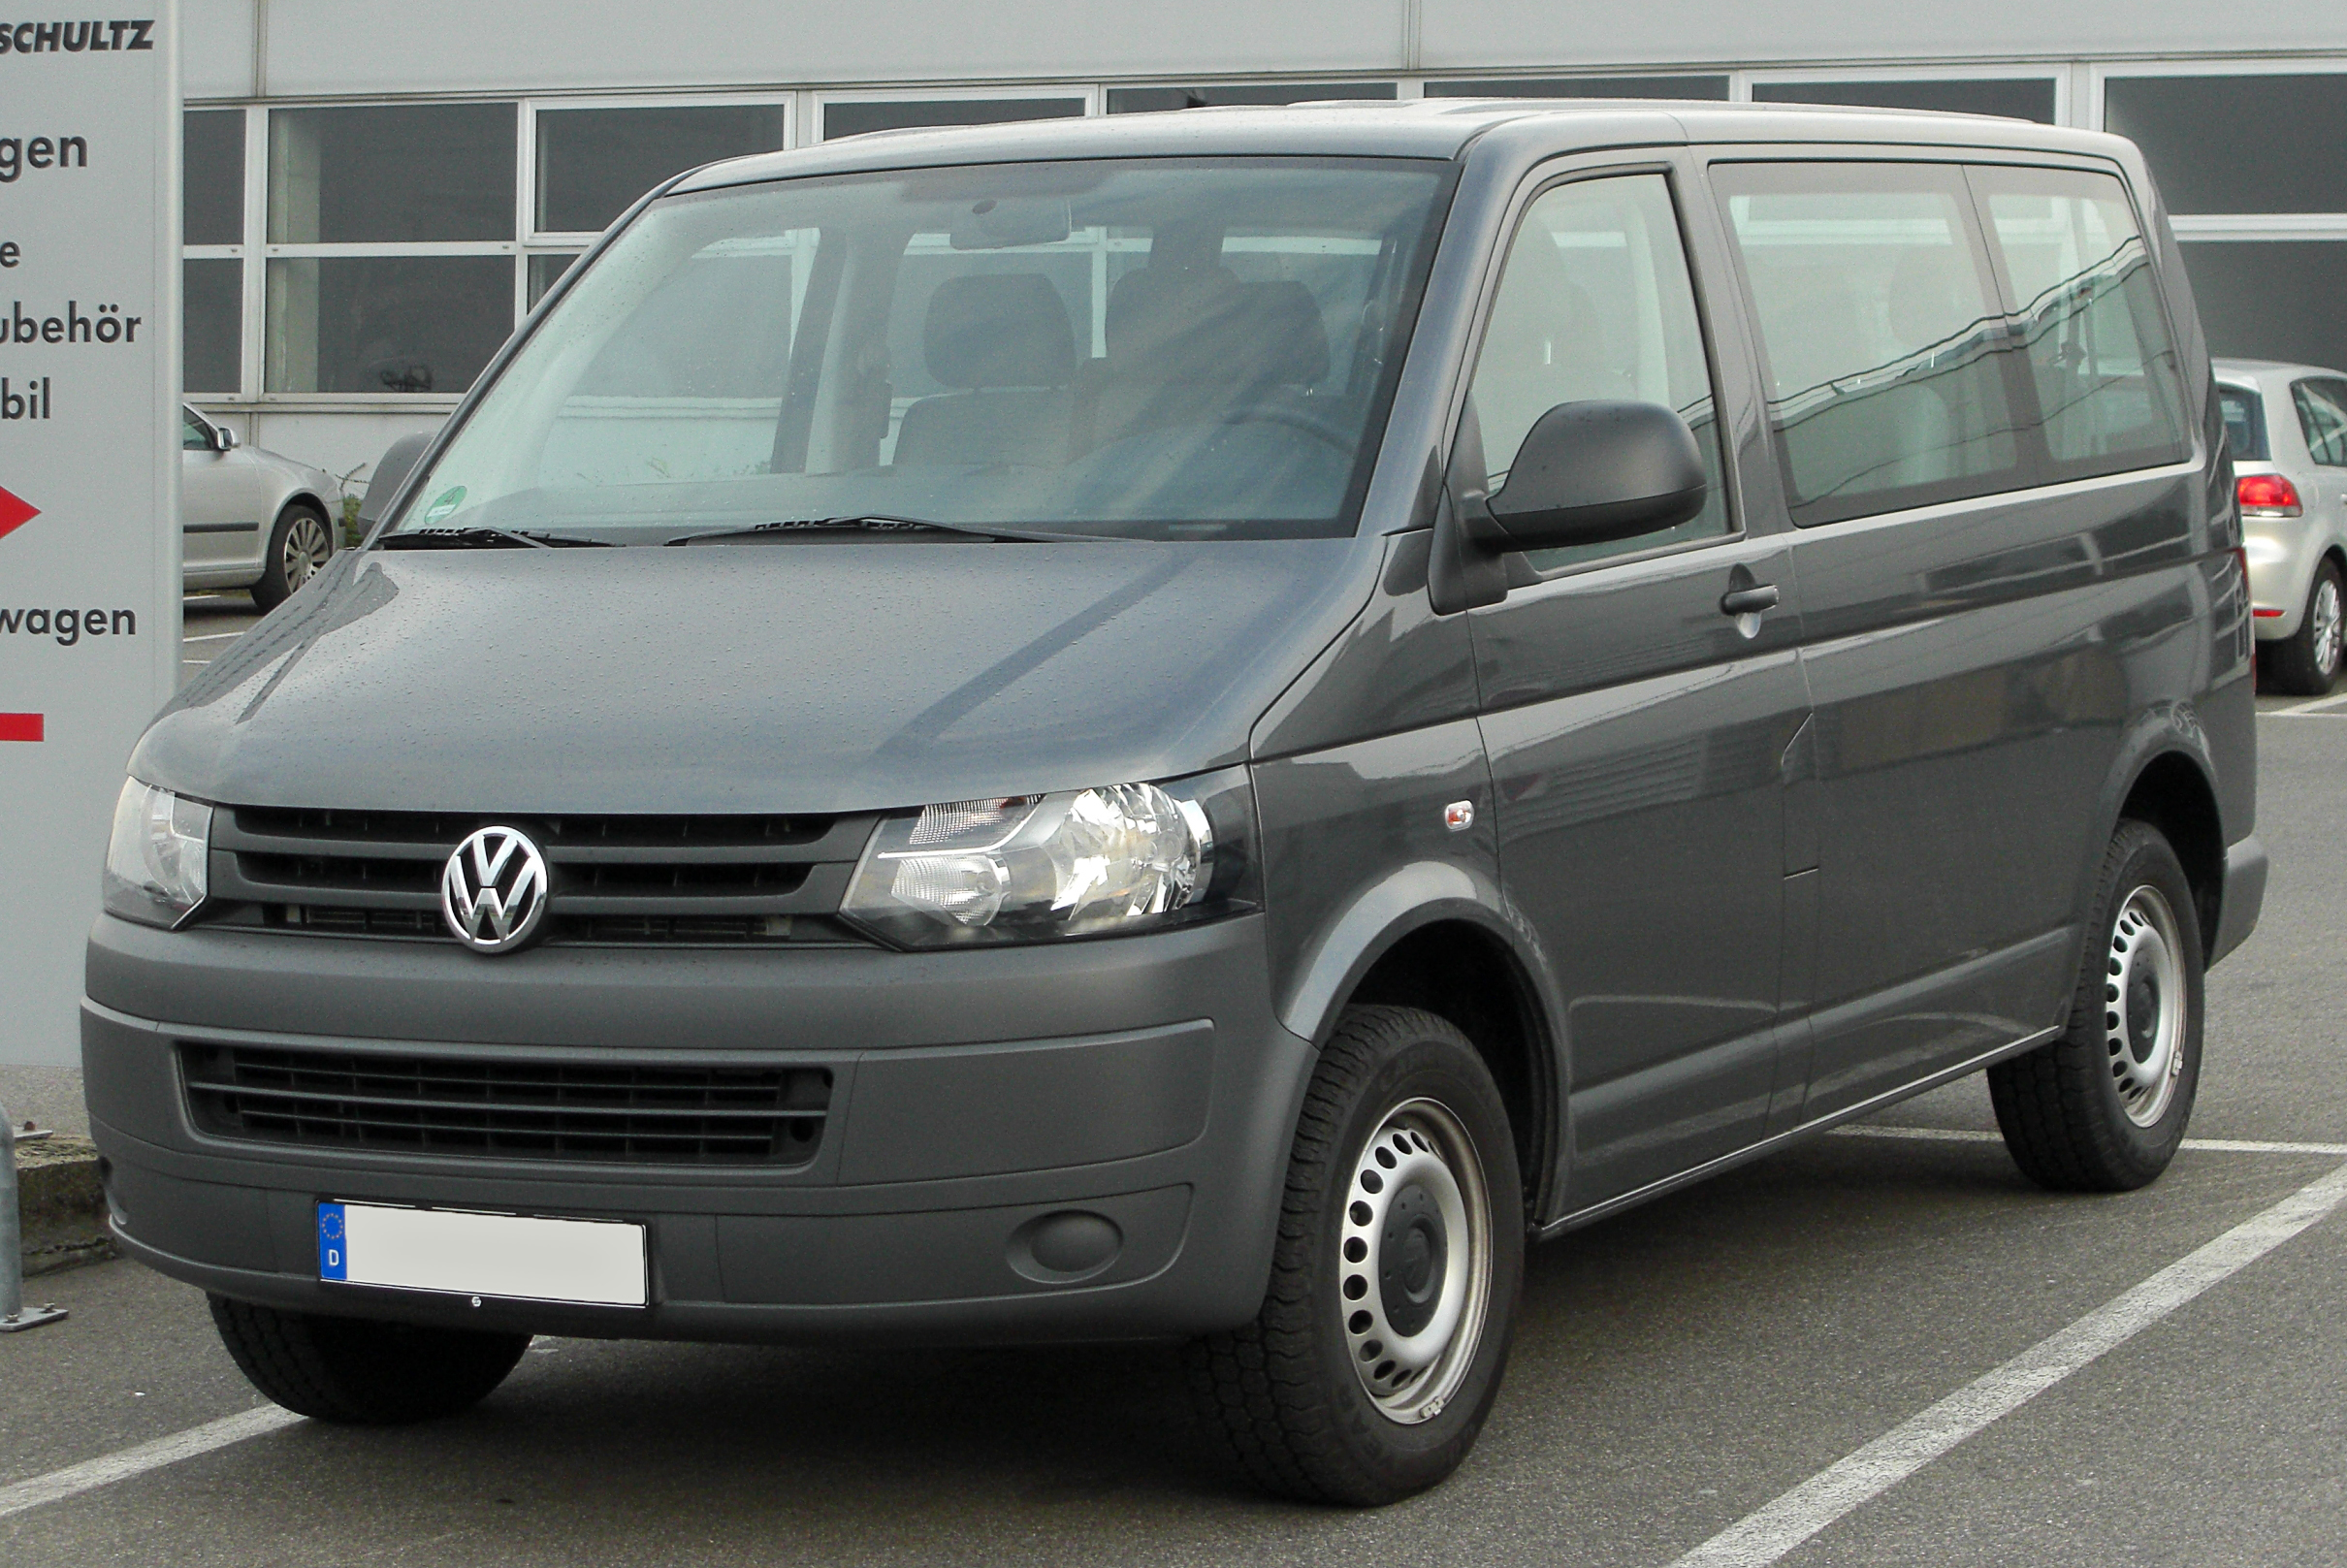 file vw transporter tdi t5 facelift front wikimedia commons. Black Bedroom Furniture Sets. Home Design Ideas